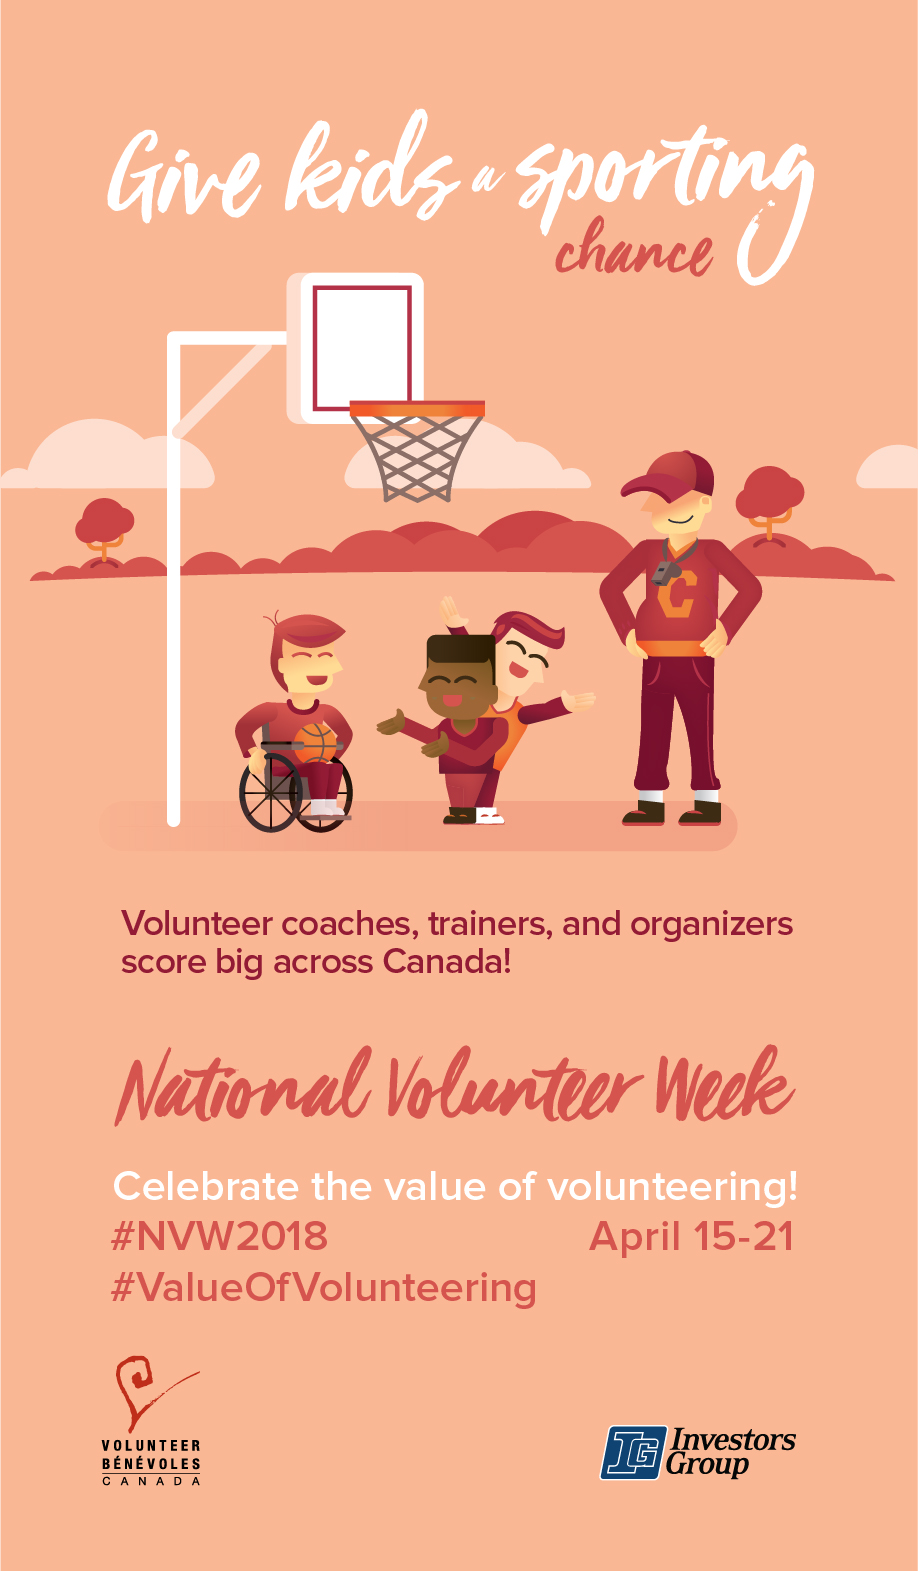 coaching and volunteering Overview youth sports coaches, many of which are volunteers, are the foundation of youth sports in the us those who are trained and educated on the many different aspects involved with coaching kids are best prepared to provide participants with a fun-filled, safe and rewarding experience.